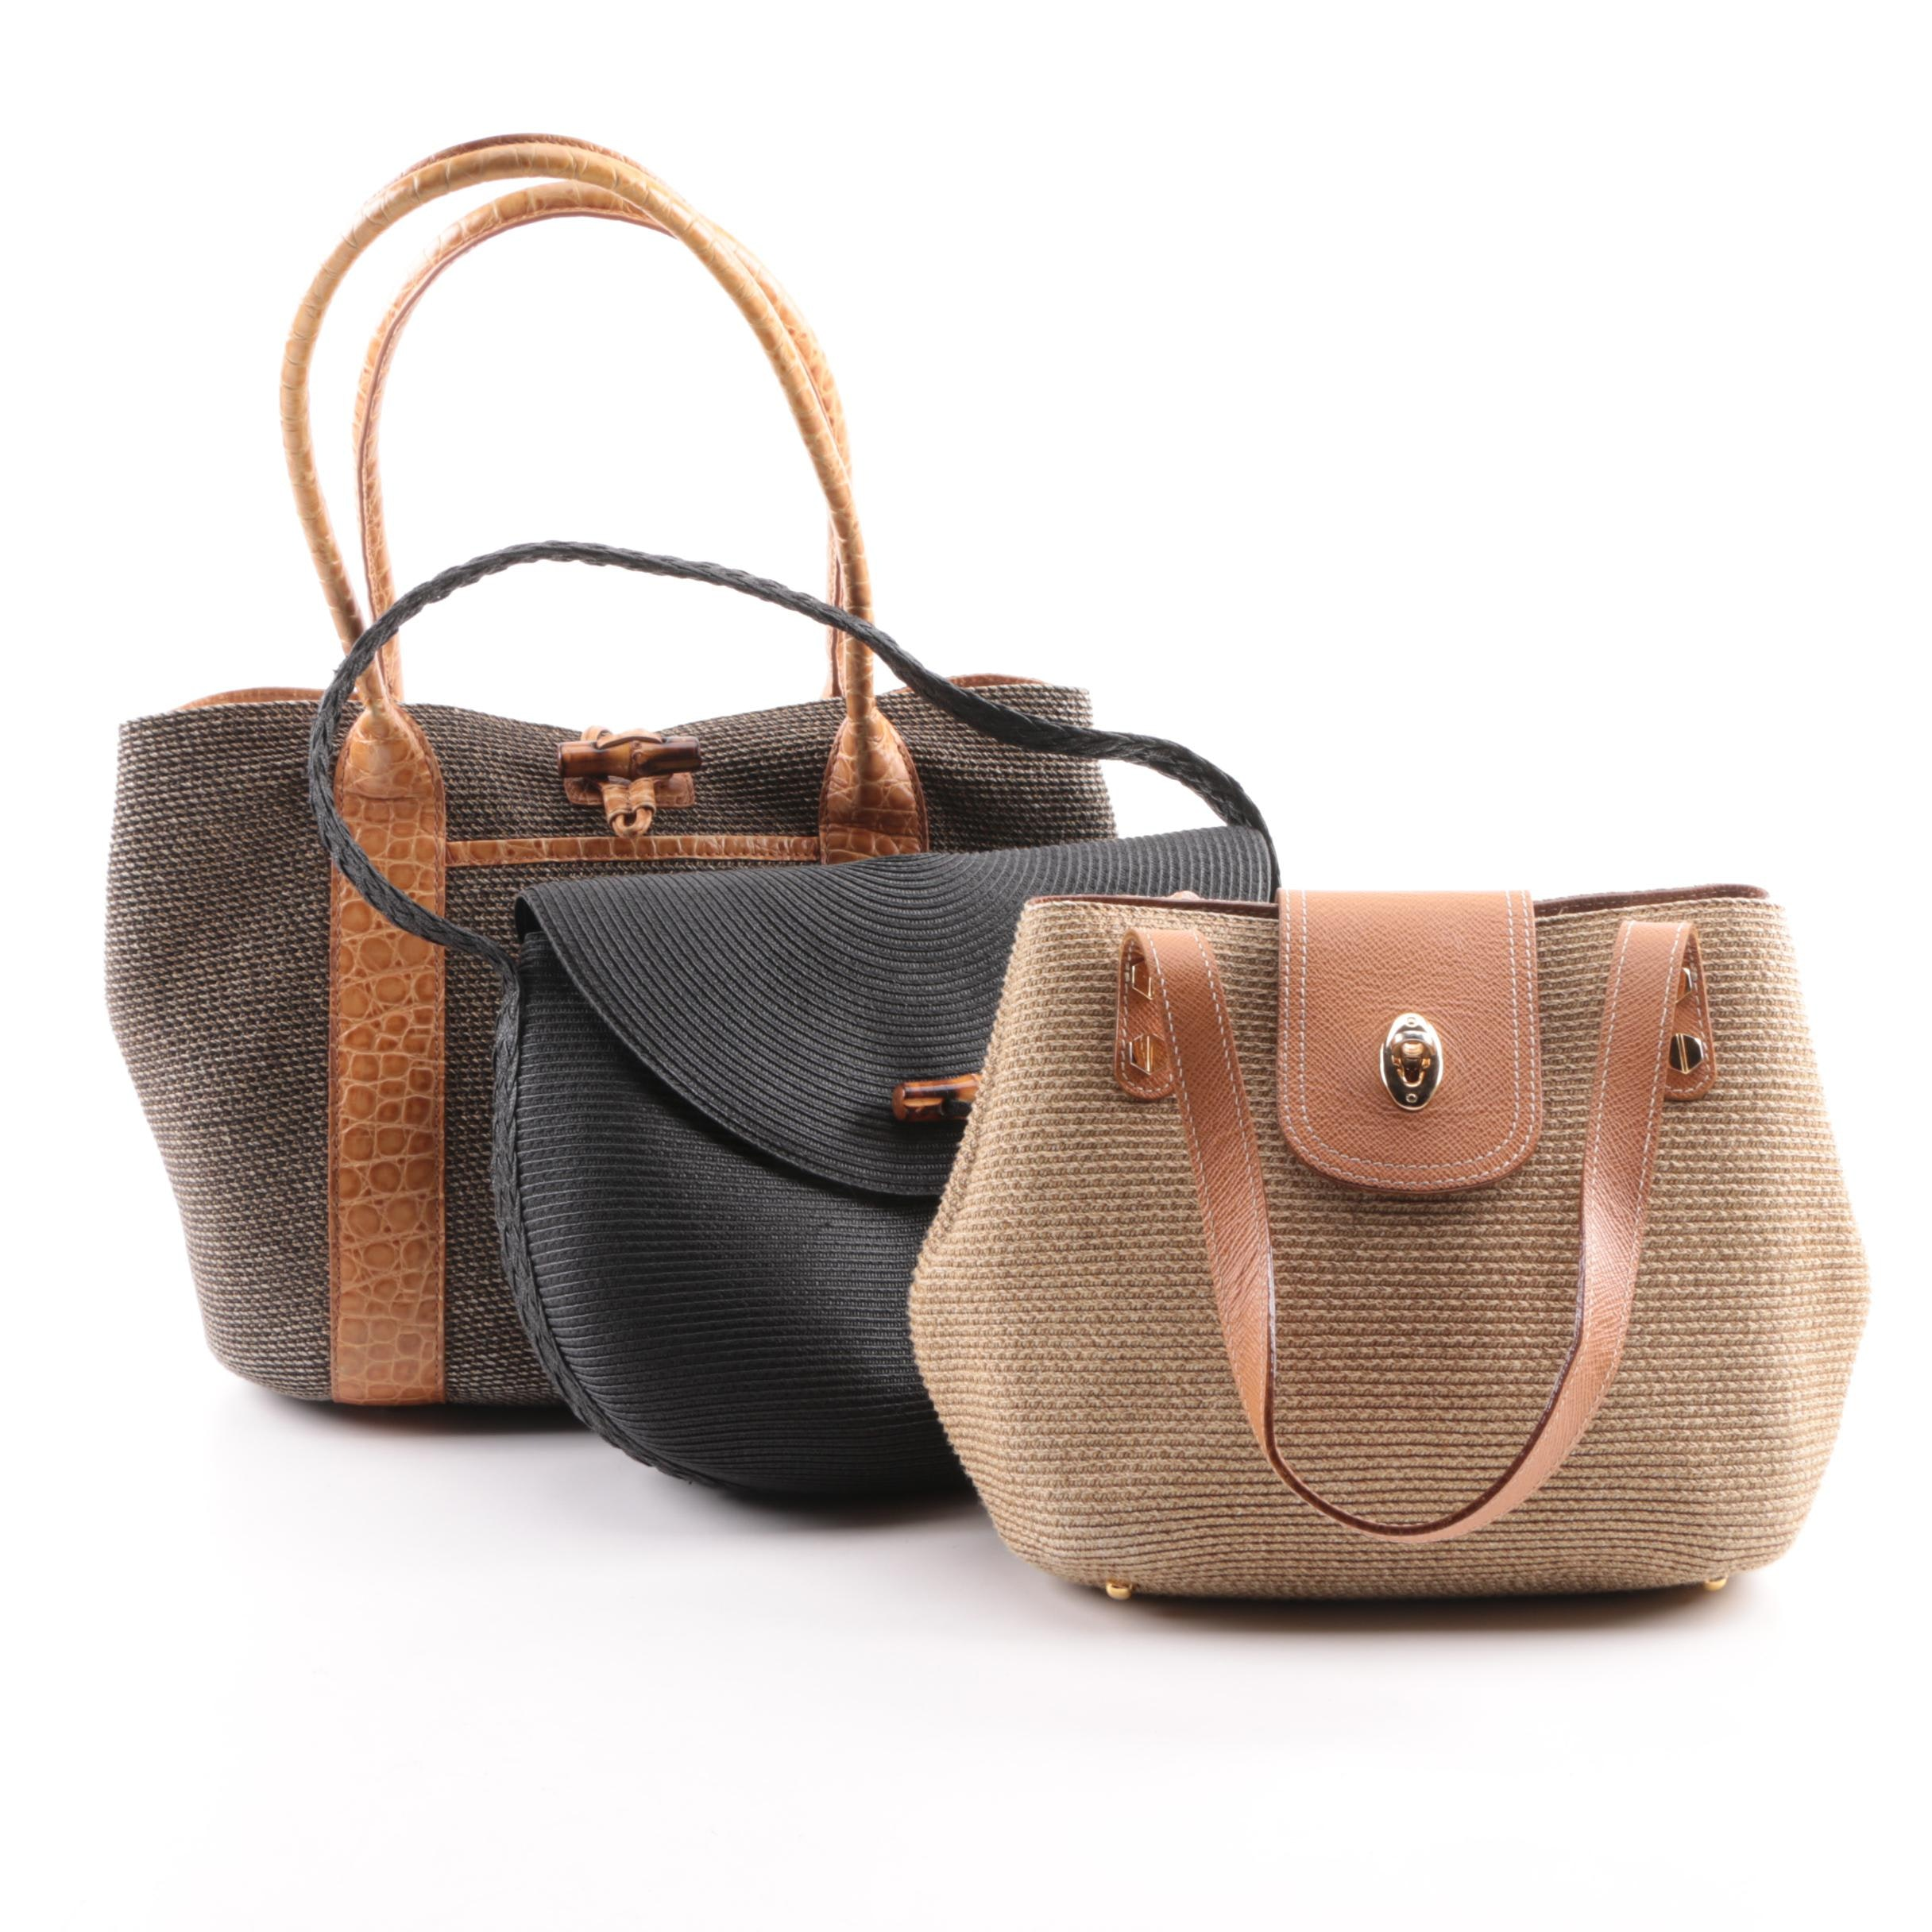 Eric Javits Woven Straw and Leather Handbags